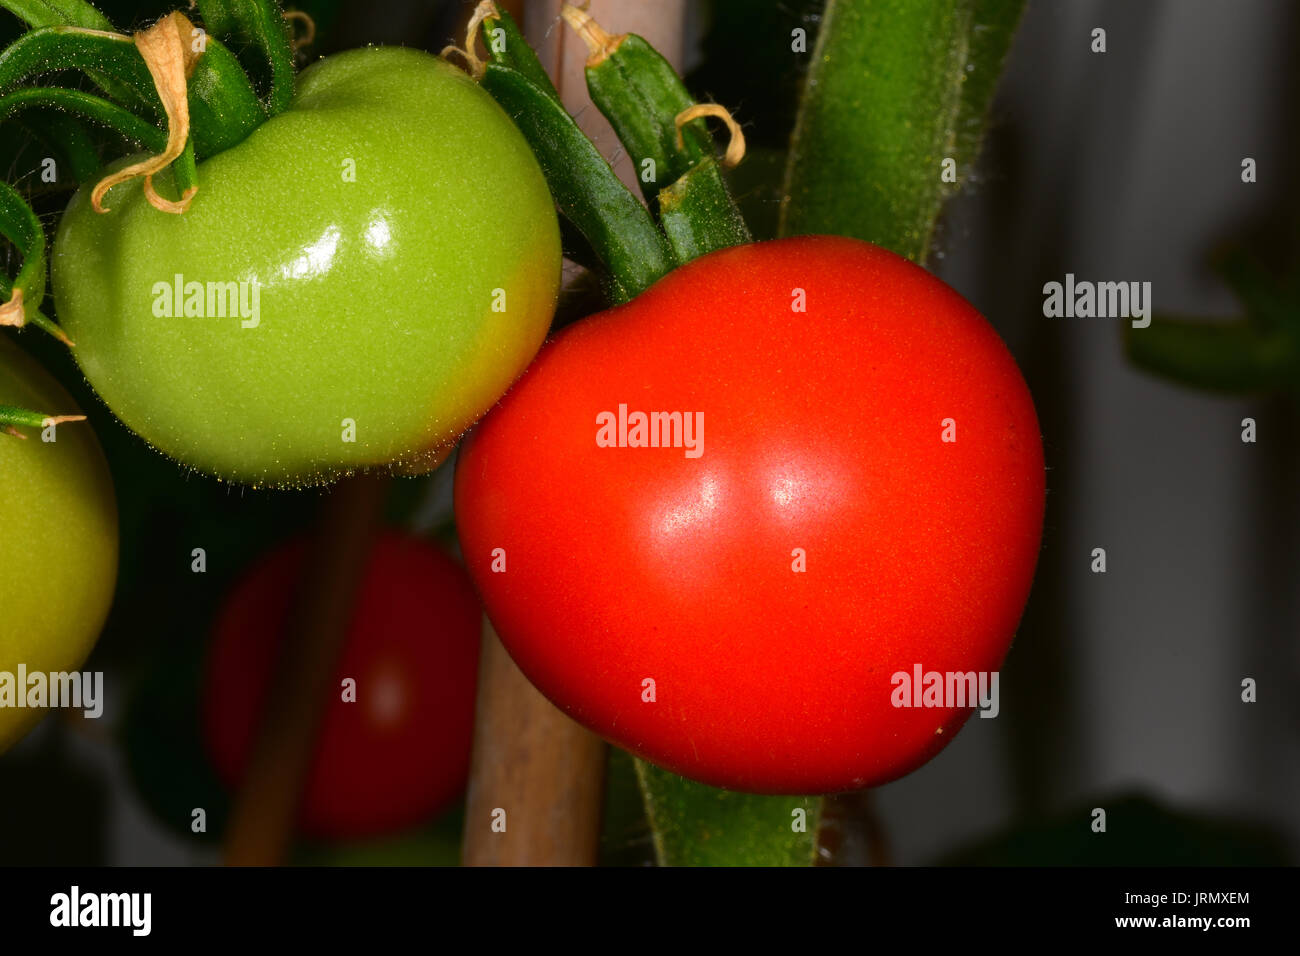 Tomato growing on a vine - Stock Image